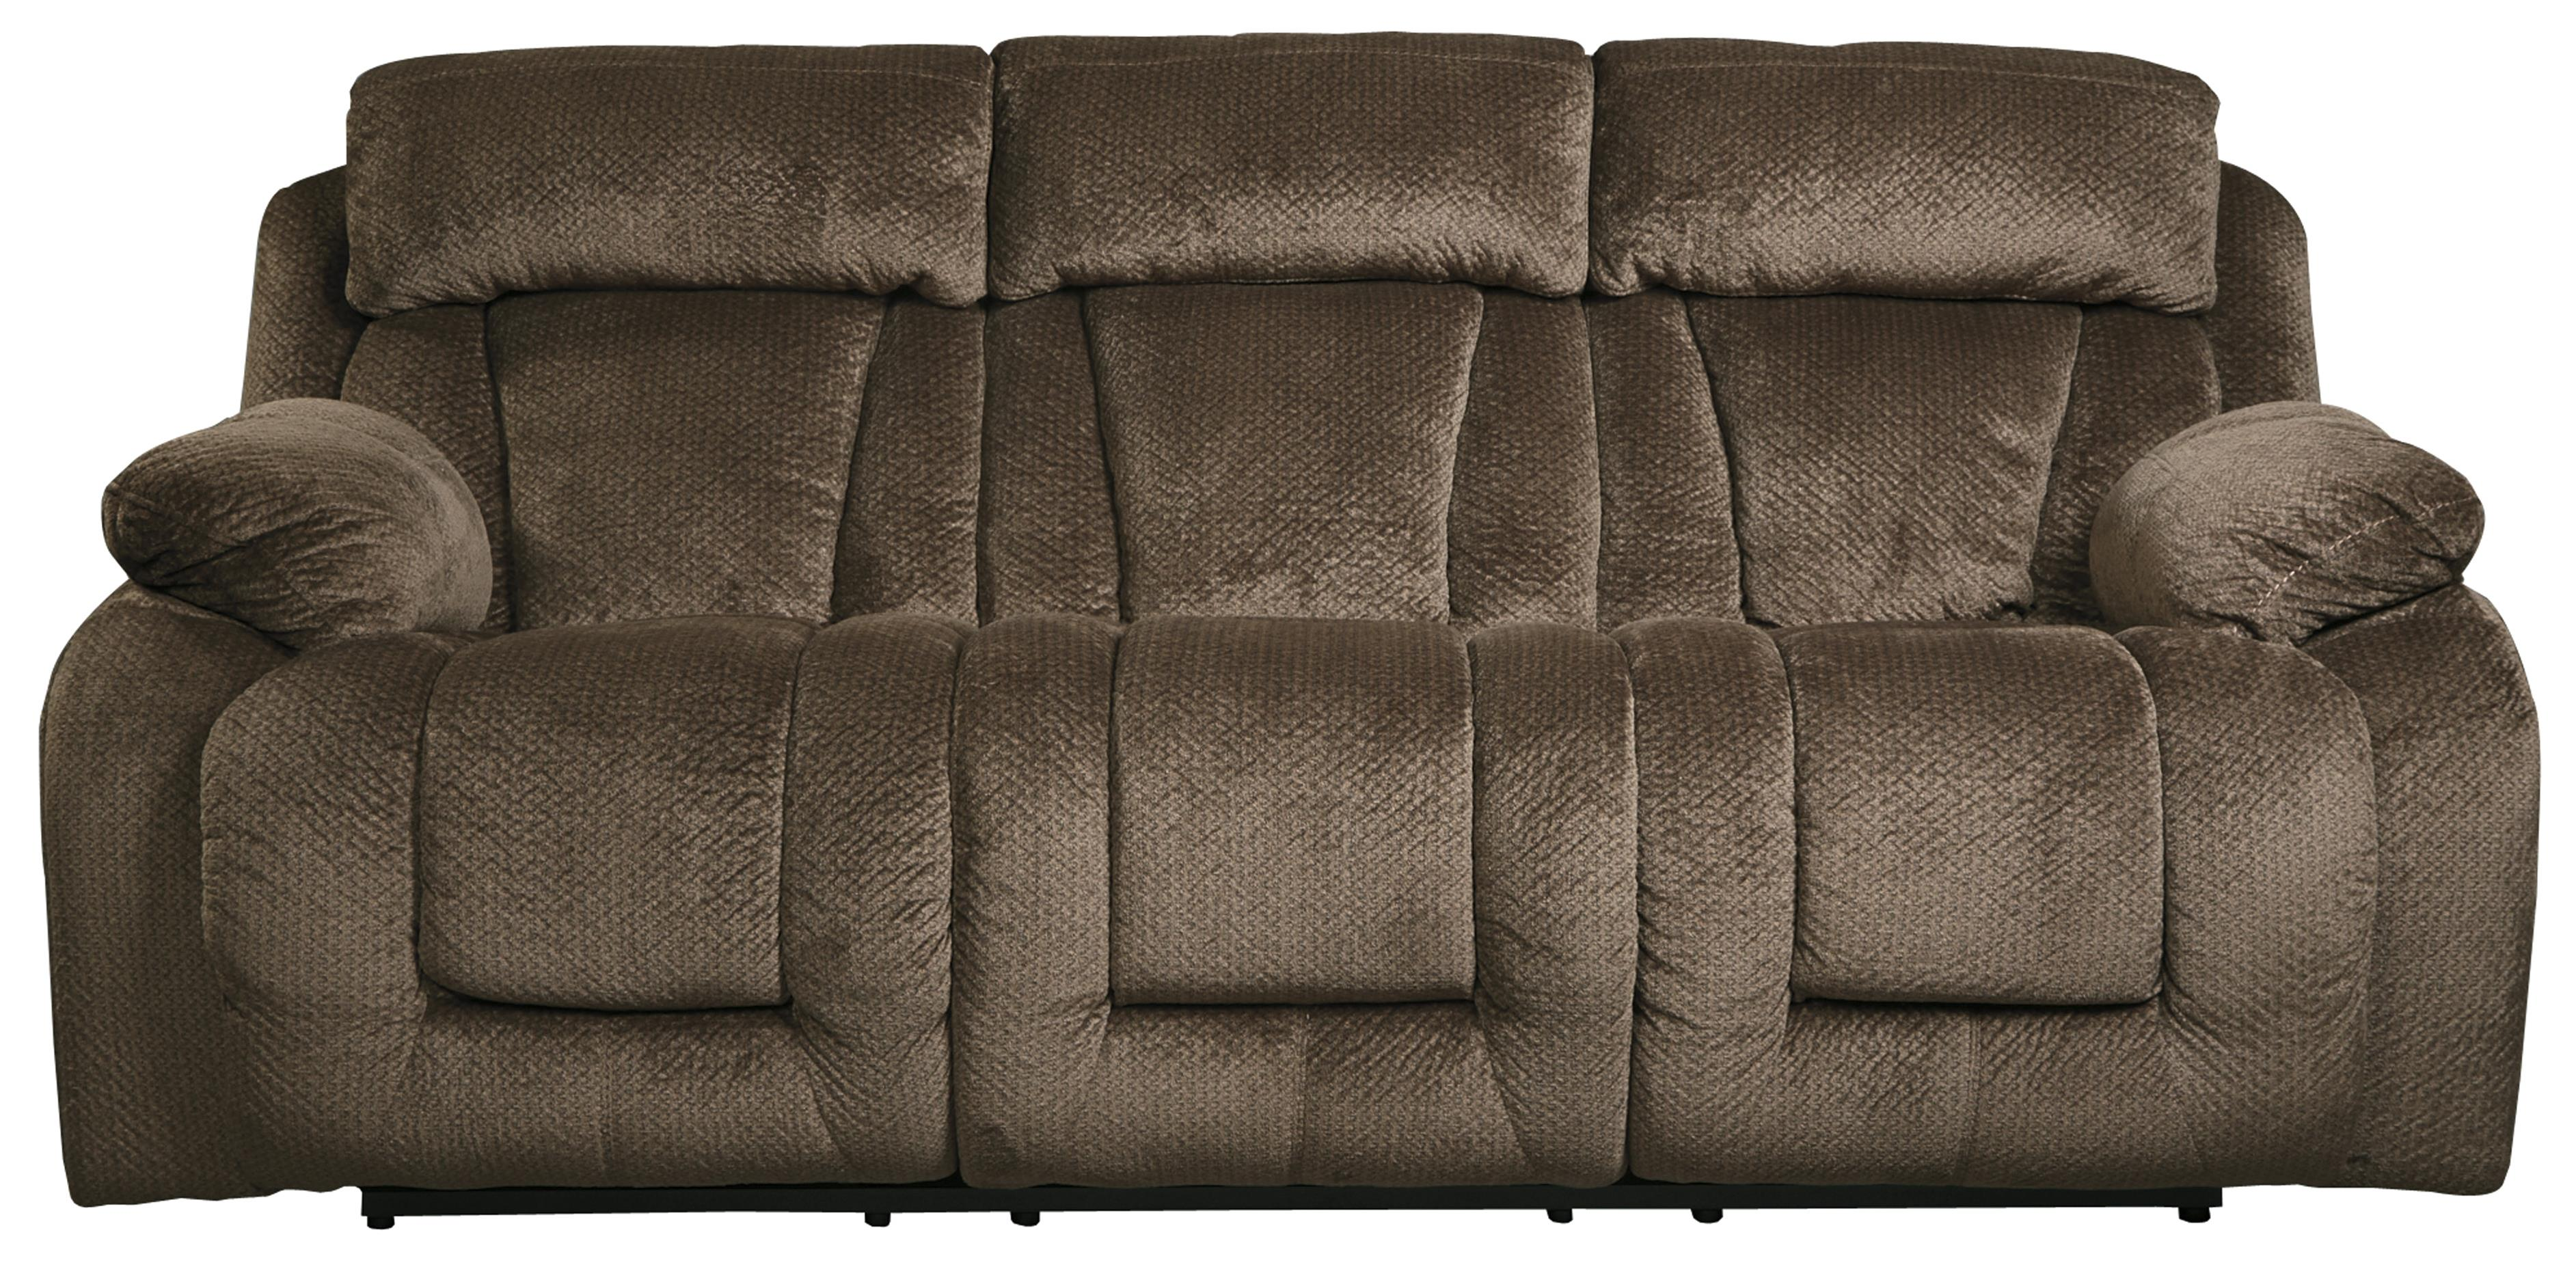 Signature Design by Ashley Stricklin Reclining Sofa - Item Number: 8650388